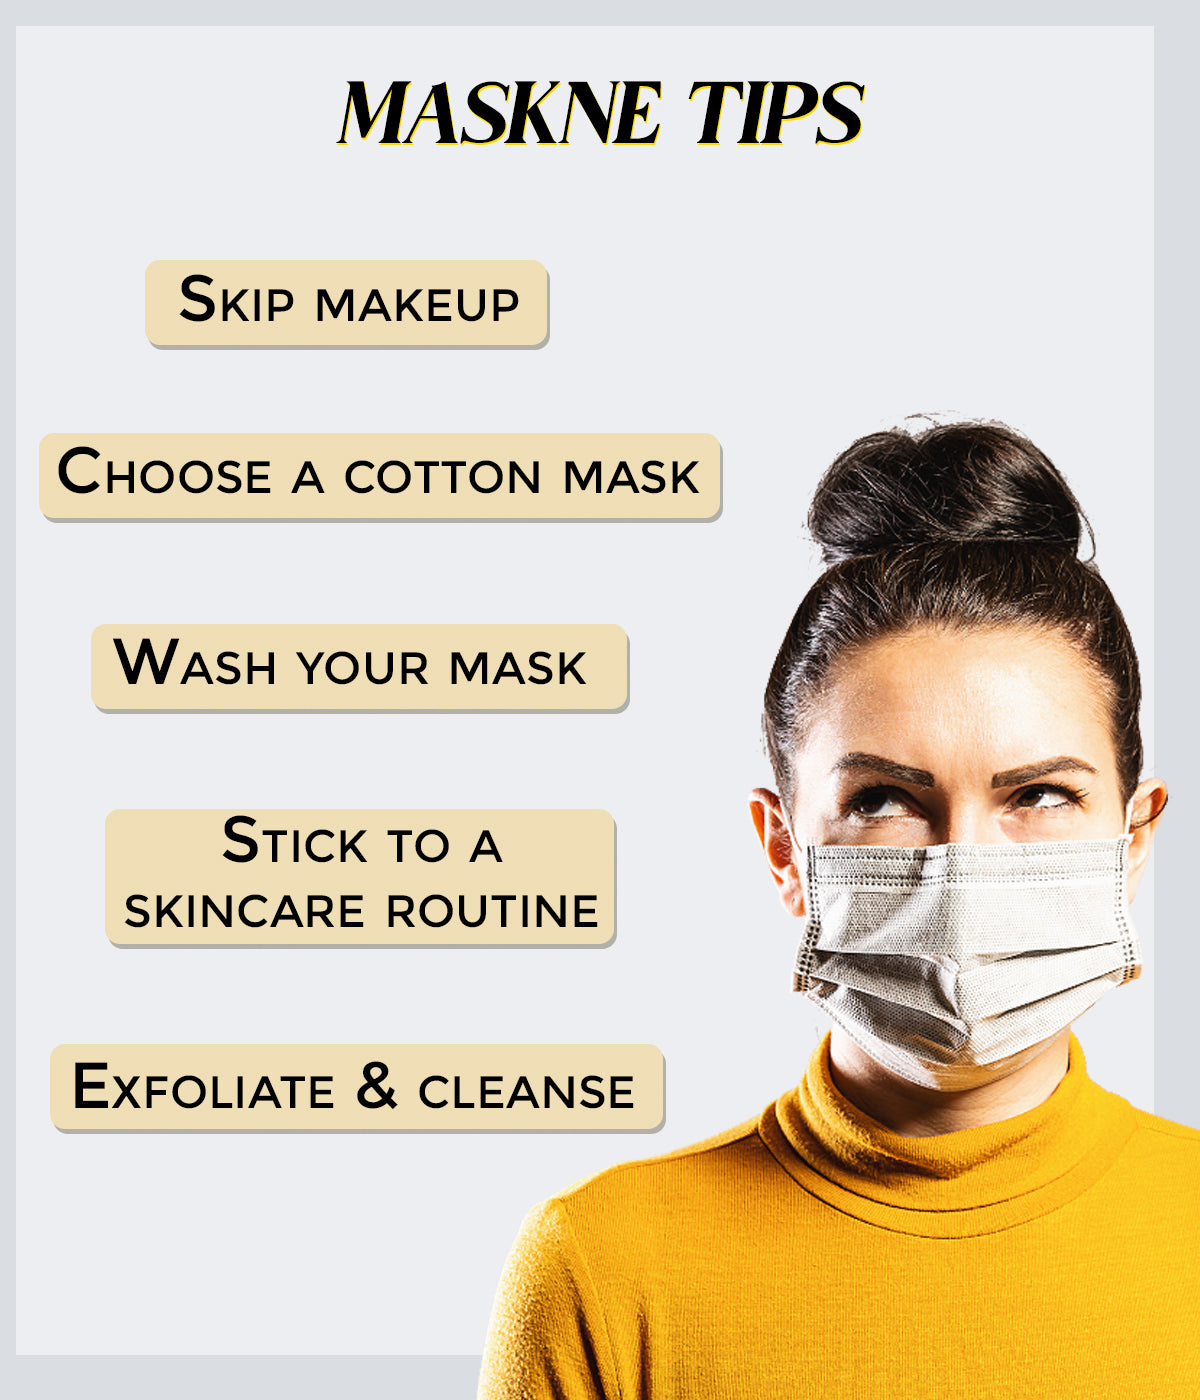 This is an image for tips for maskne